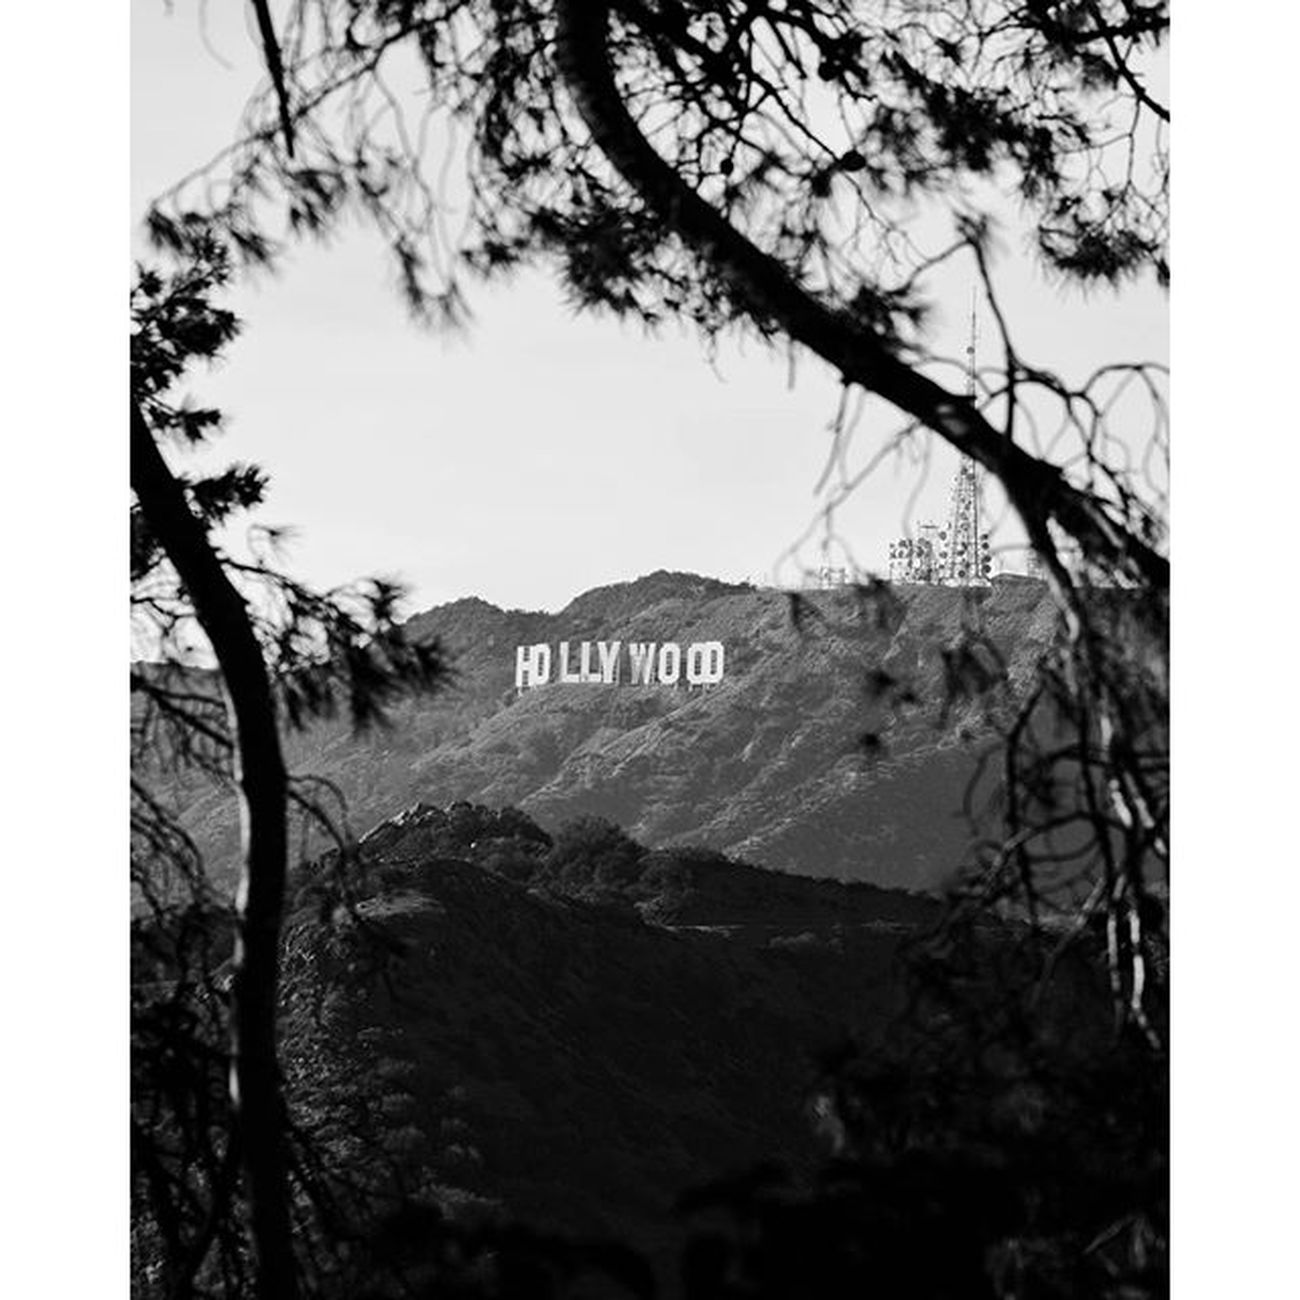 Hollywood Classic🎥 Check out my New Blogroll 👉prophetco.tumblr.com for other shots as well as additional formats and edits. ✌ Dreamcreateprosper TheCreatorClass Mkexplore Lifeofadventure vsco vscogang visualsgang premiumposts vscogramer top_selects exploreeverything justgoshoot featuremeinstagood instagood instavibes nothinnspecial exploreeverything featuremeinstagood instagood instavibes way2ill agameoftones weexplore_ HsDailyFeature createcommune socality heatercentral